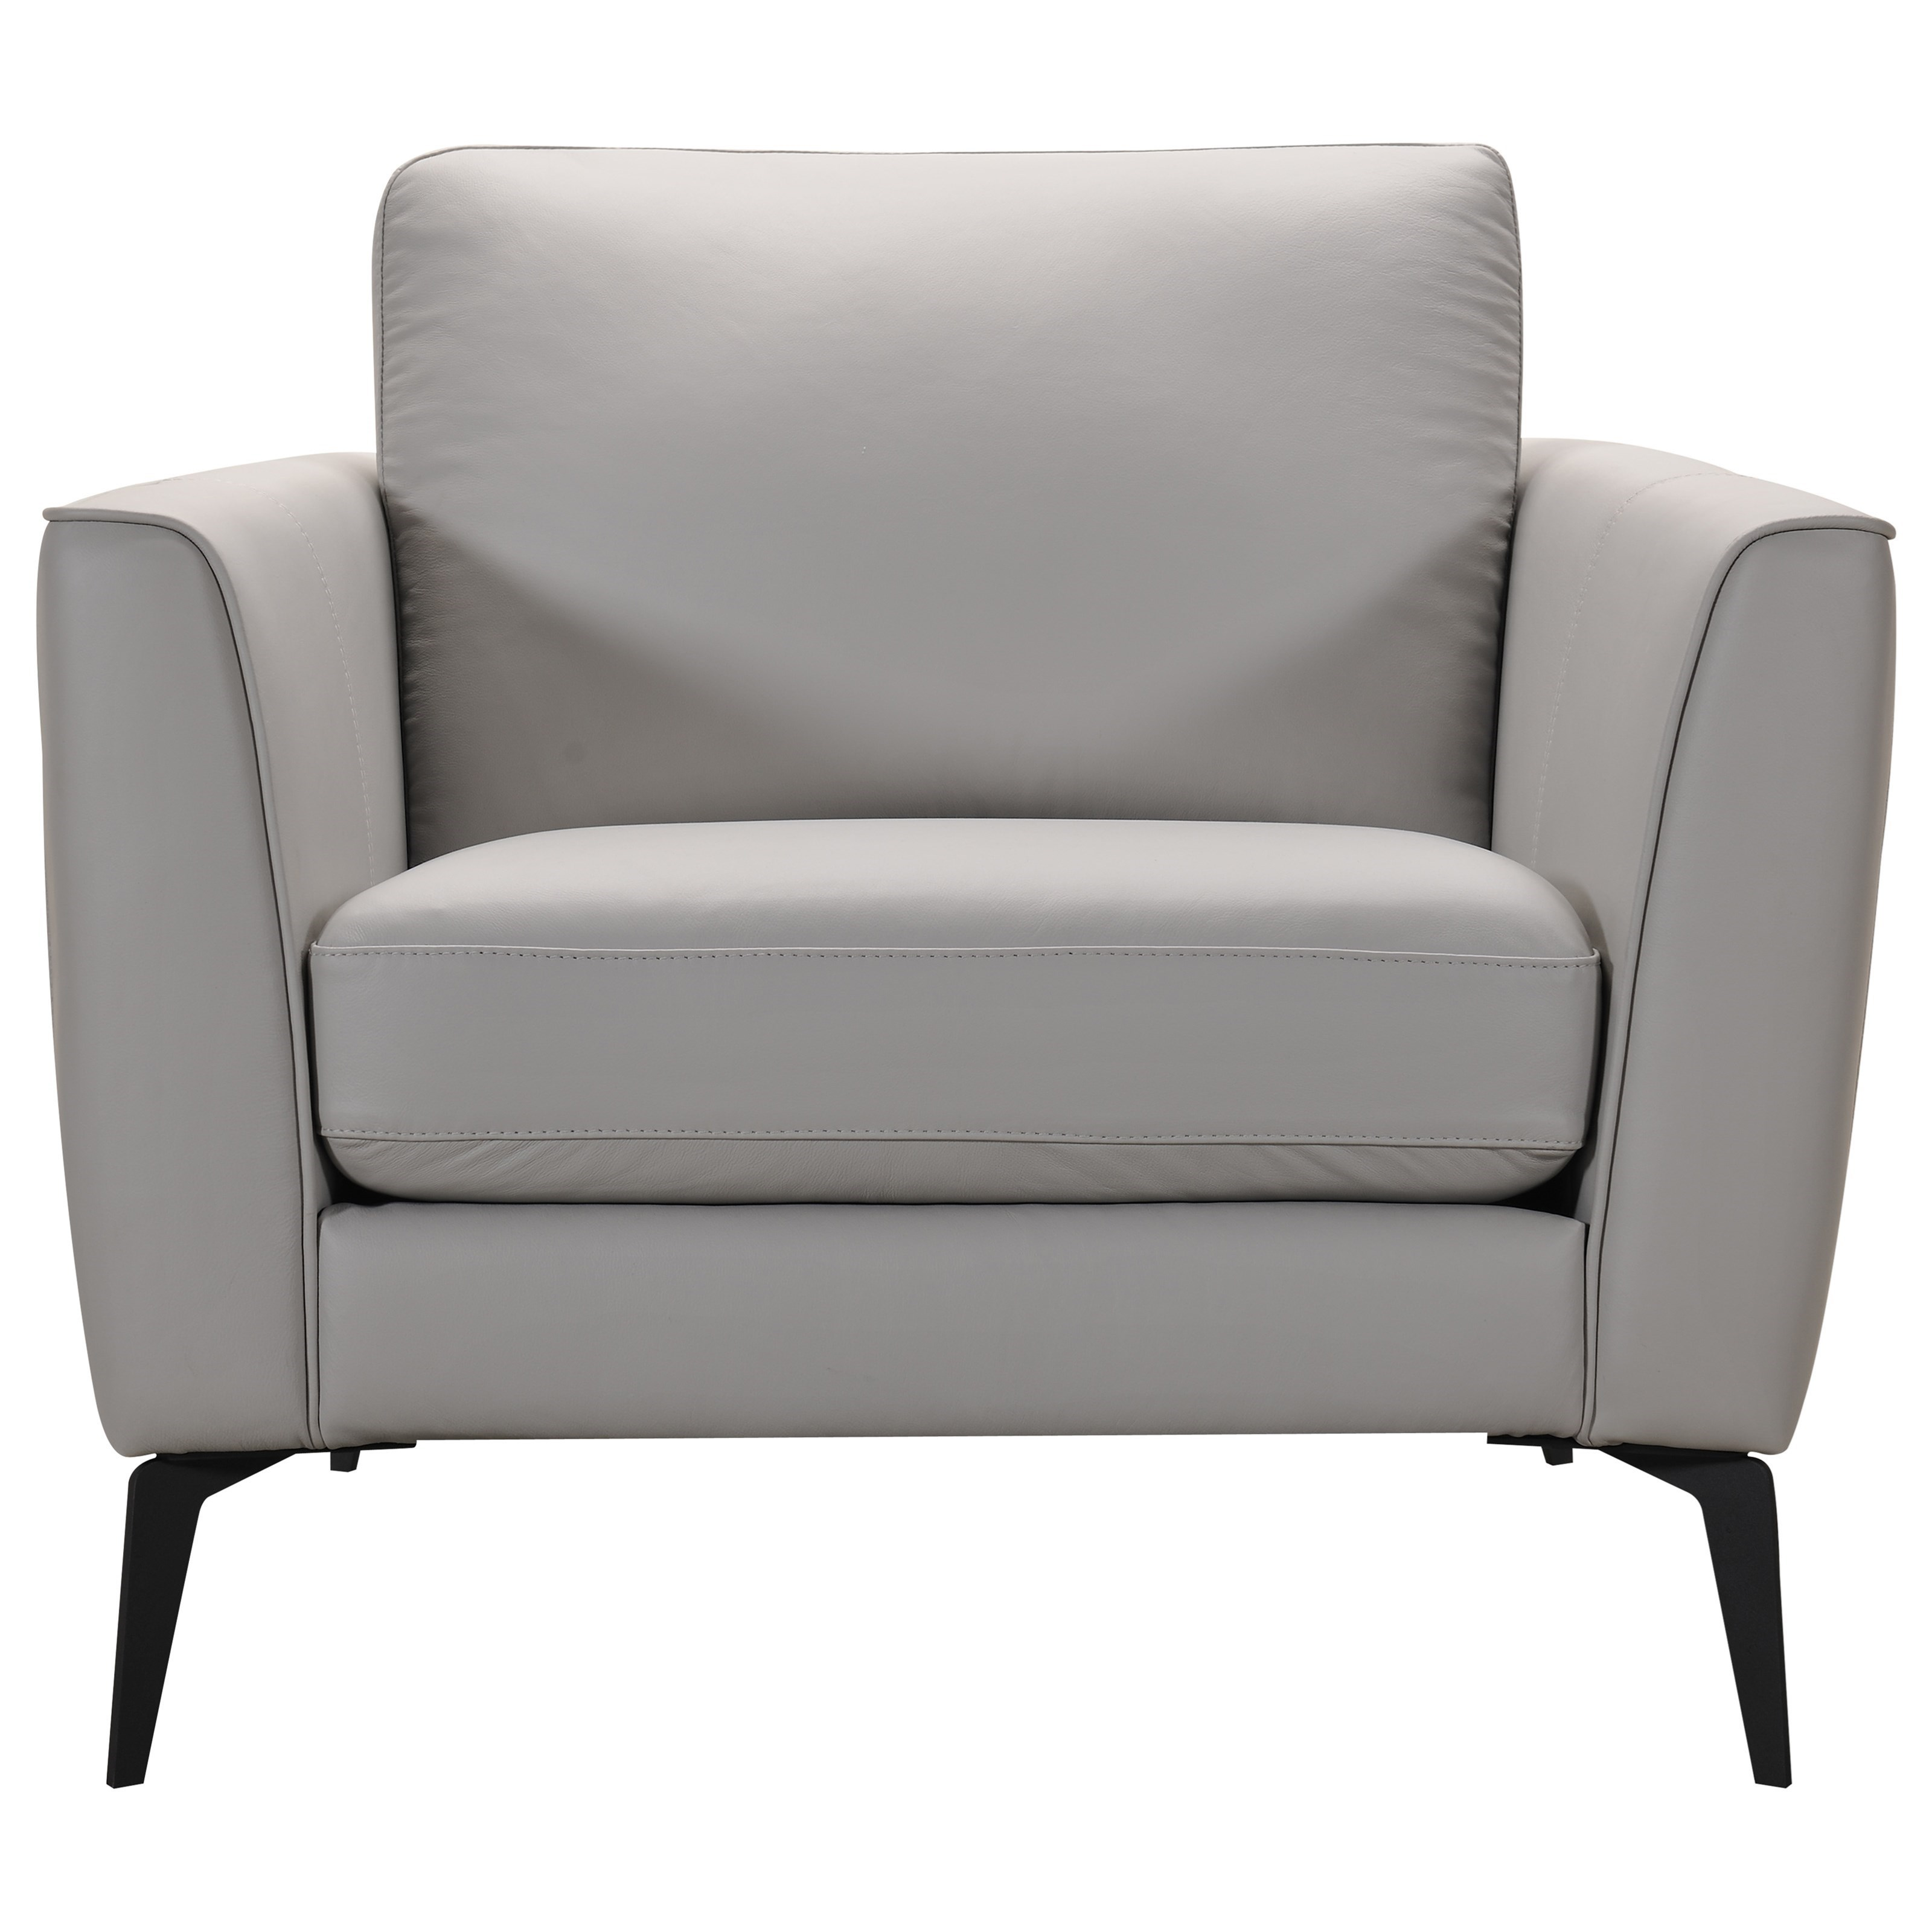 31800 Chair by Violino at Furniture Superstore - Rochester, MN